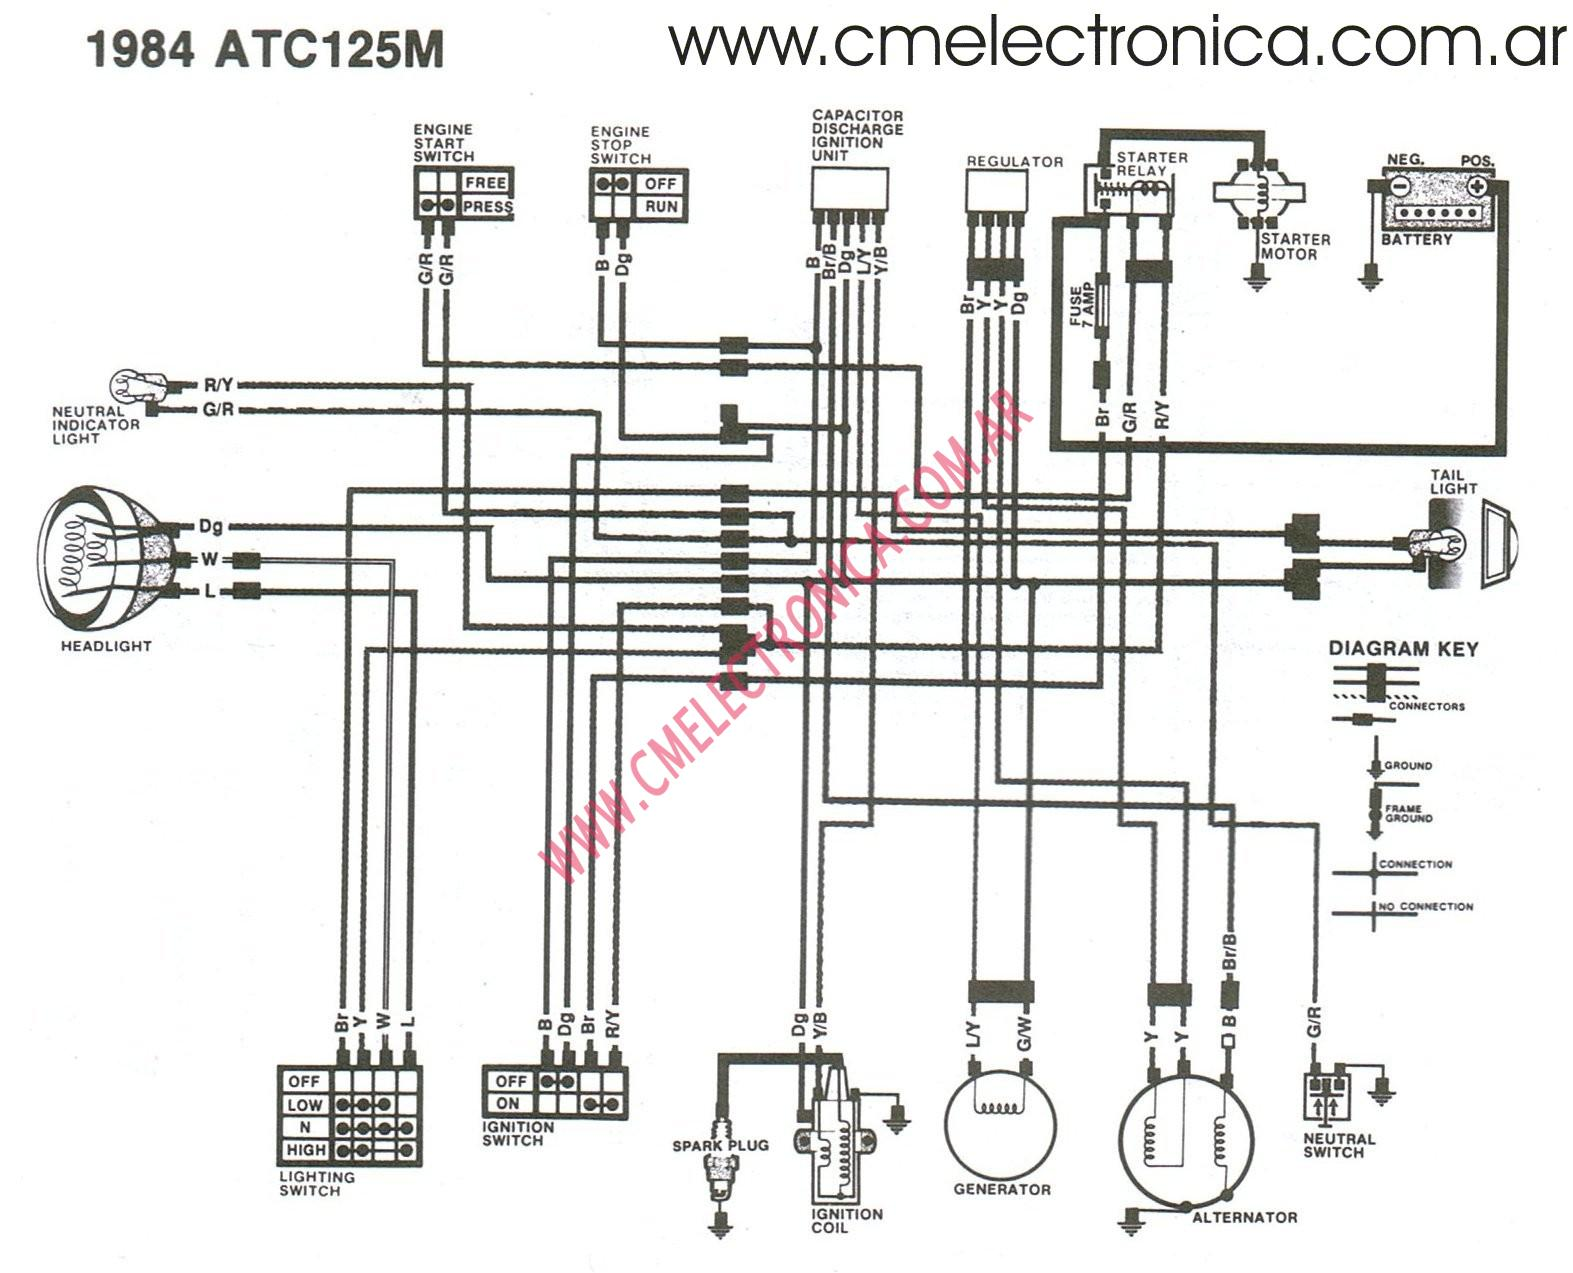 Hand Warmers Arctic Cat Wiring Diagram moreover Performance Exhaust Systems Diagram Wiring Diagrams furthermore Baja 150 Buggy Parts together with Vip Scooter Wiring Diagram besides Kasea 150 Buggy Parts. on 150cc carburetor diagram